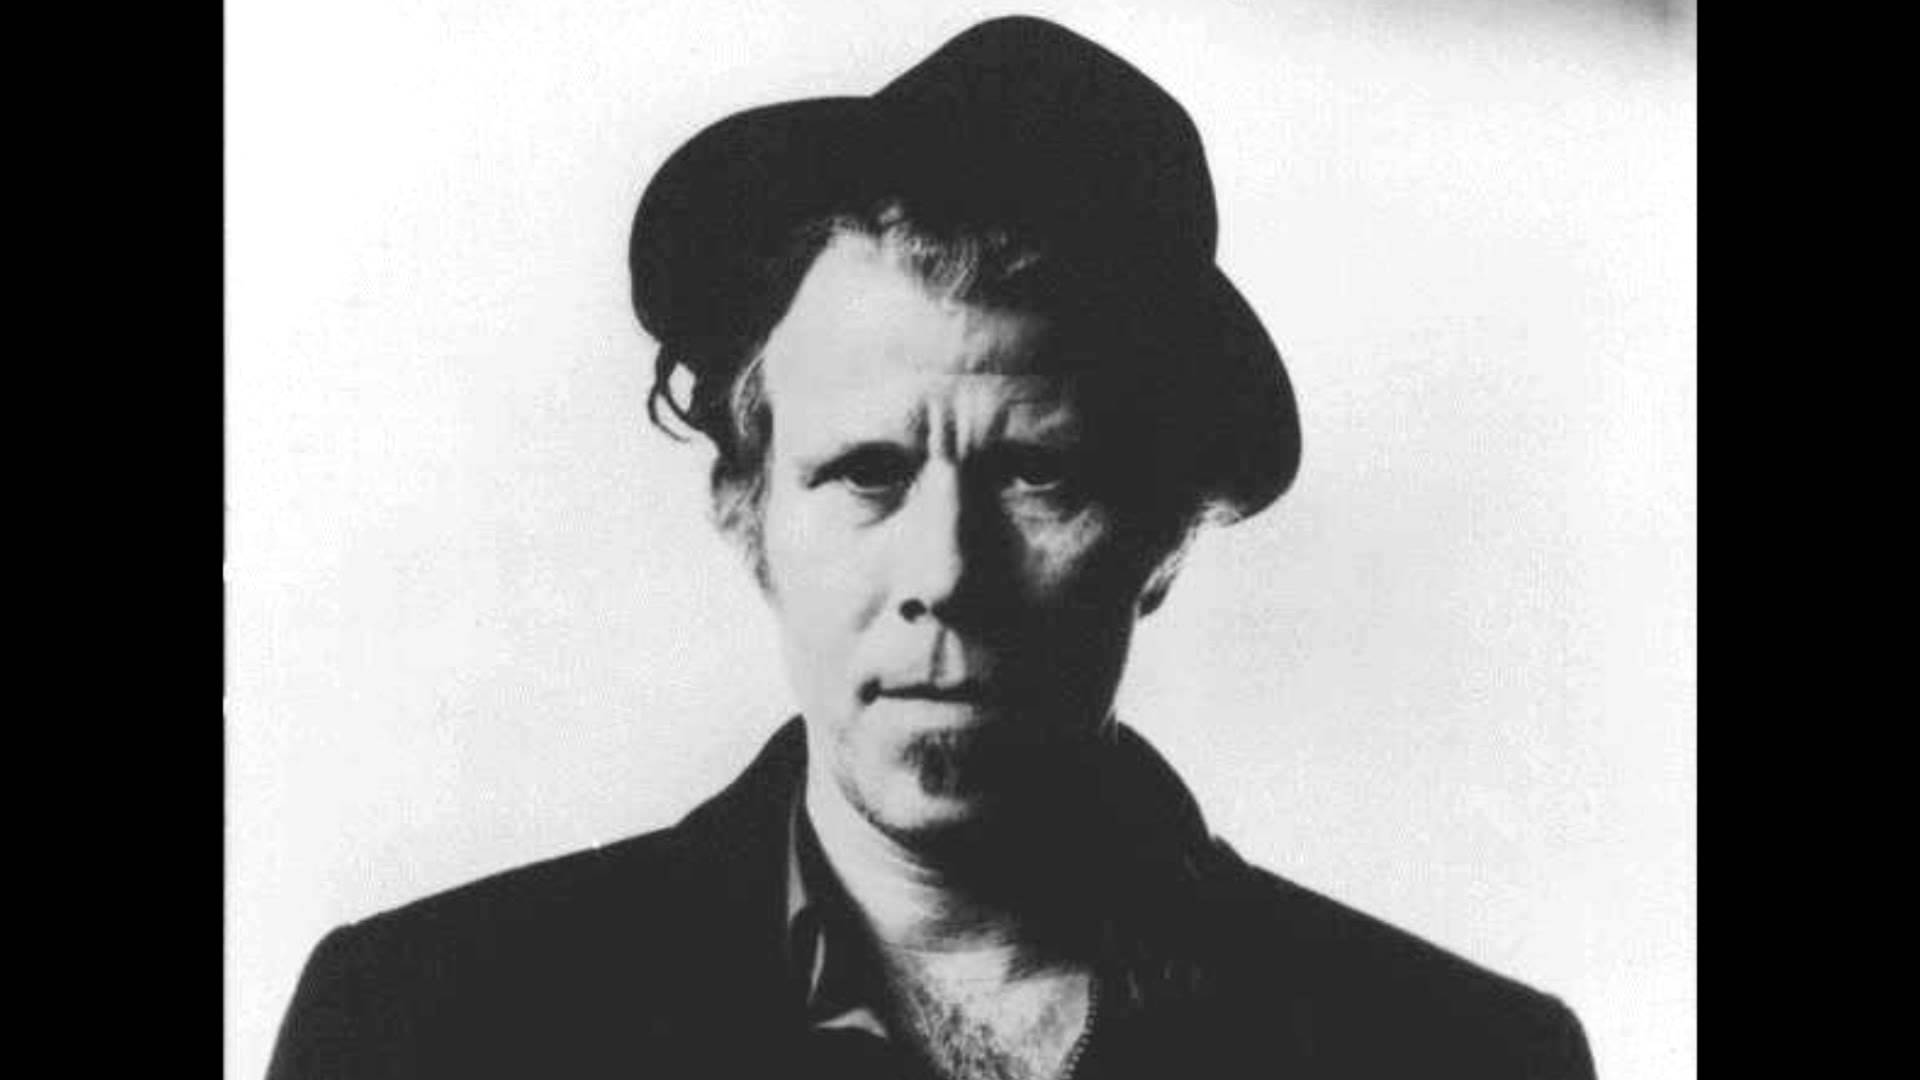 Tom Waits wallpaper | 1920x1080 | #65291